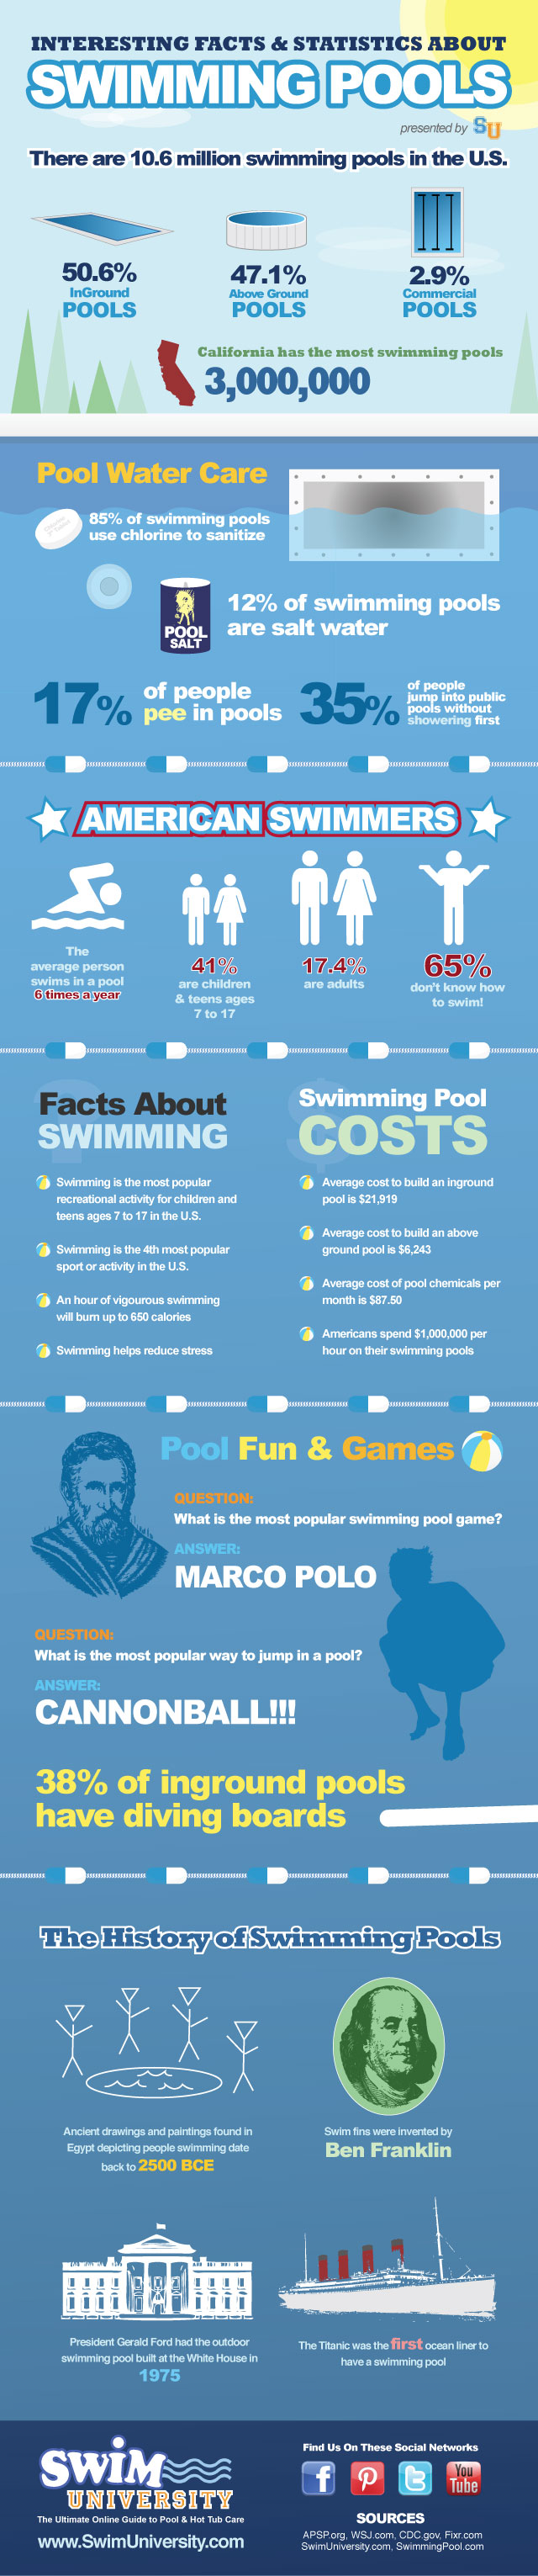 Swimming Pools Statistics and Facts